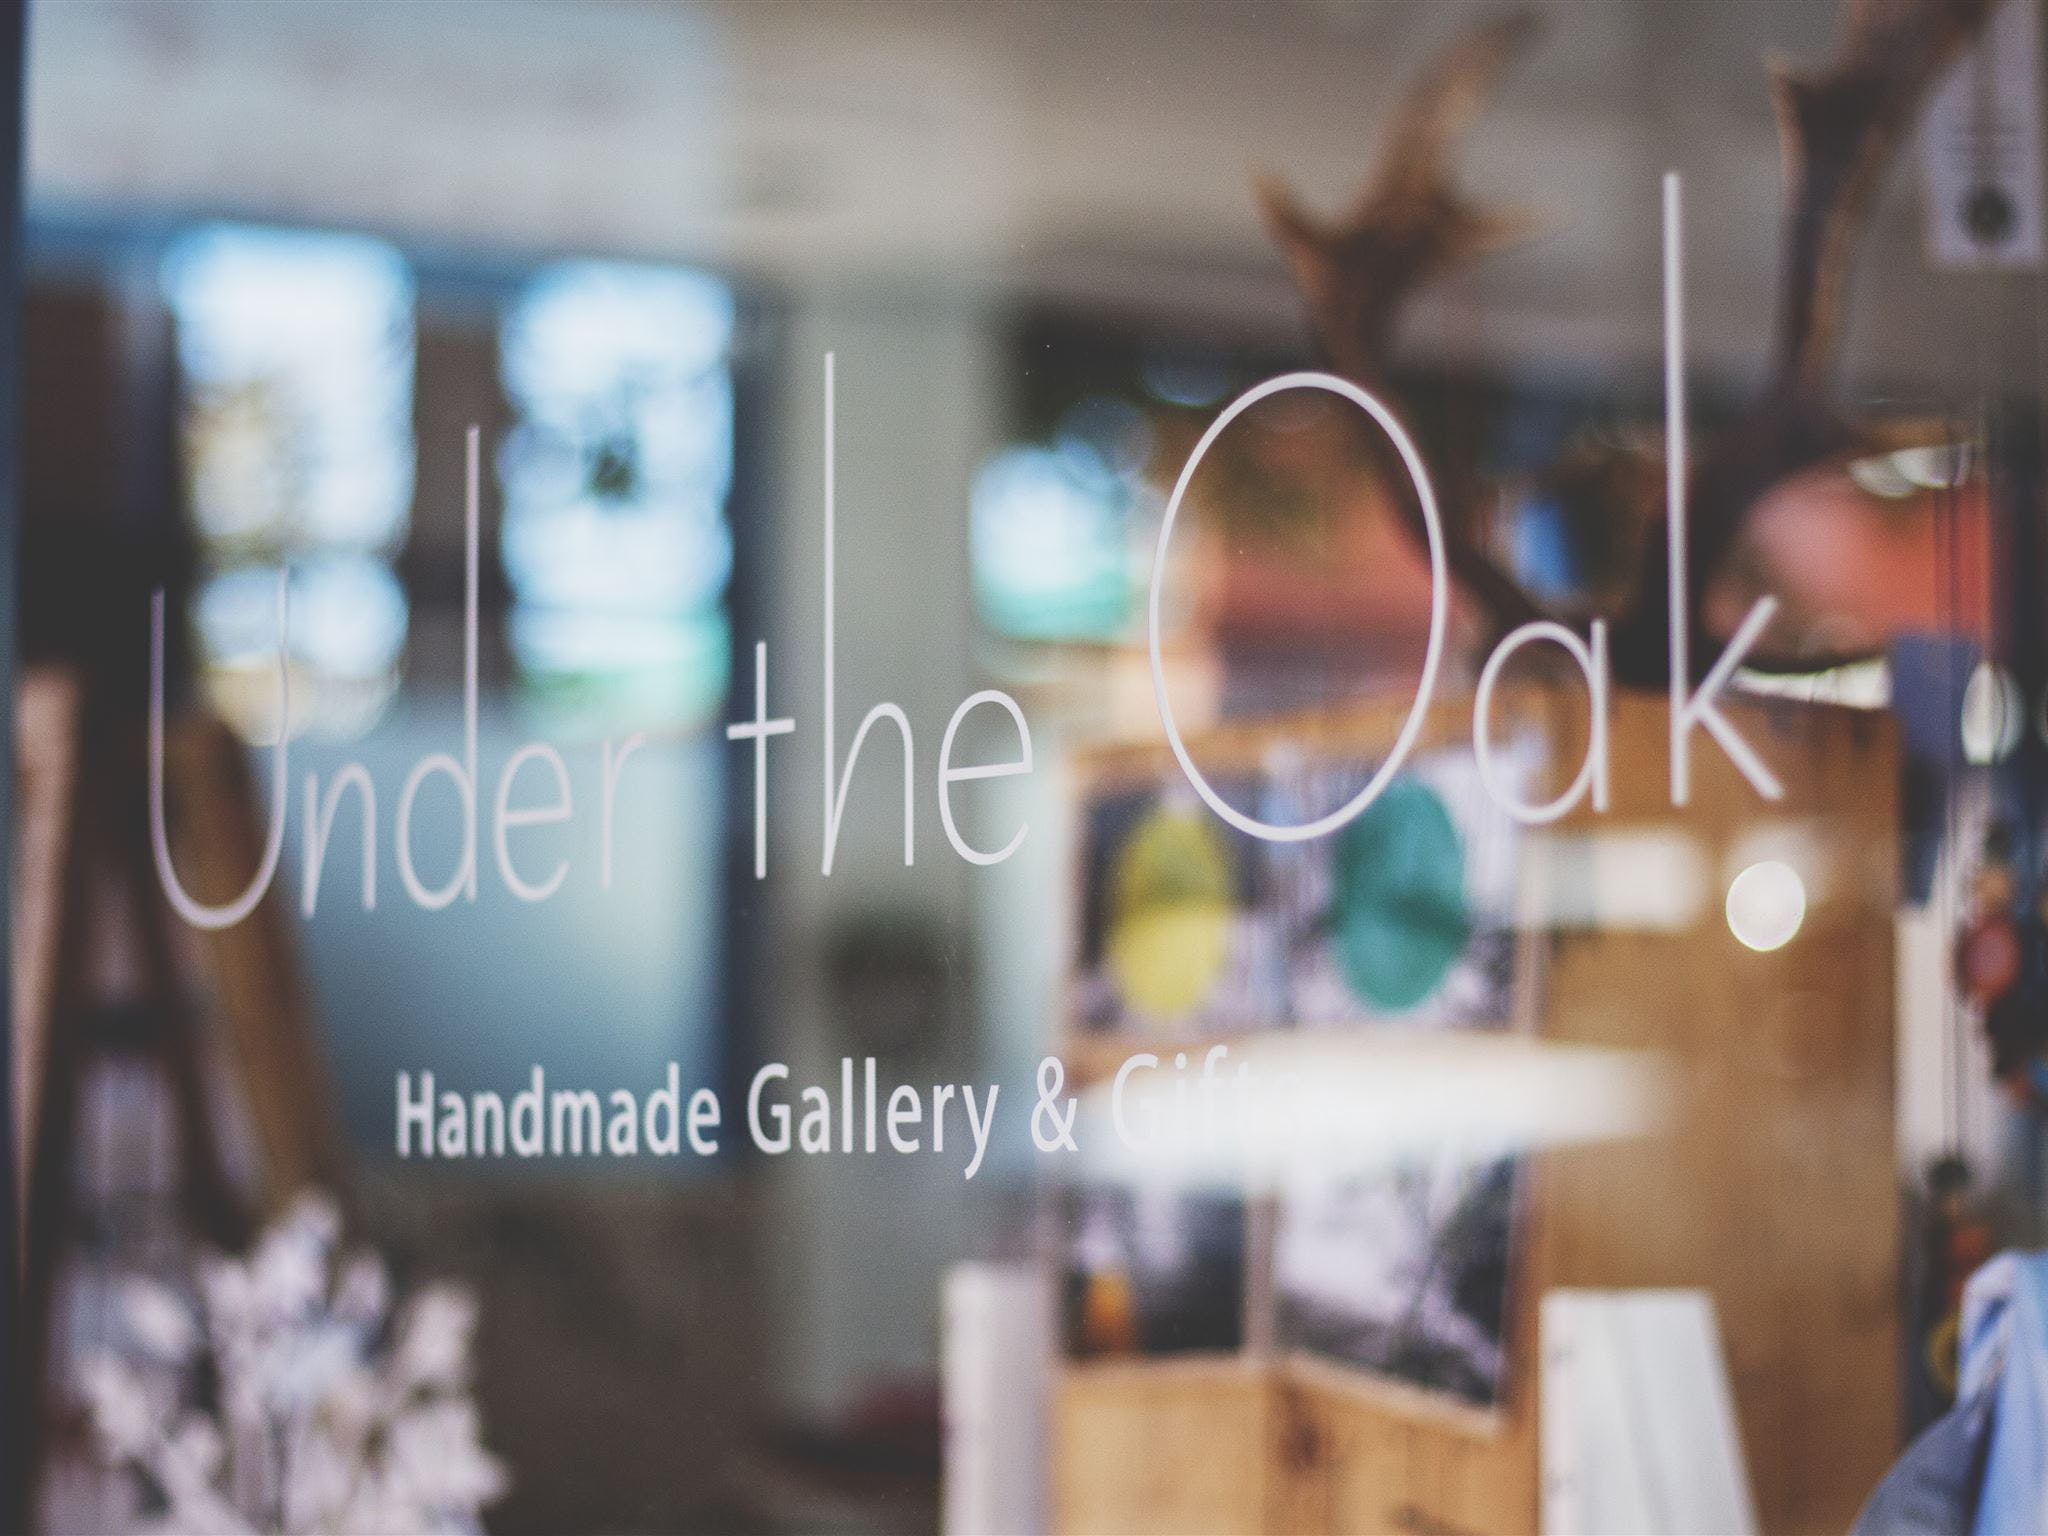 Under The Oak Handmade Gallery and Gifts - Townsville Tourism